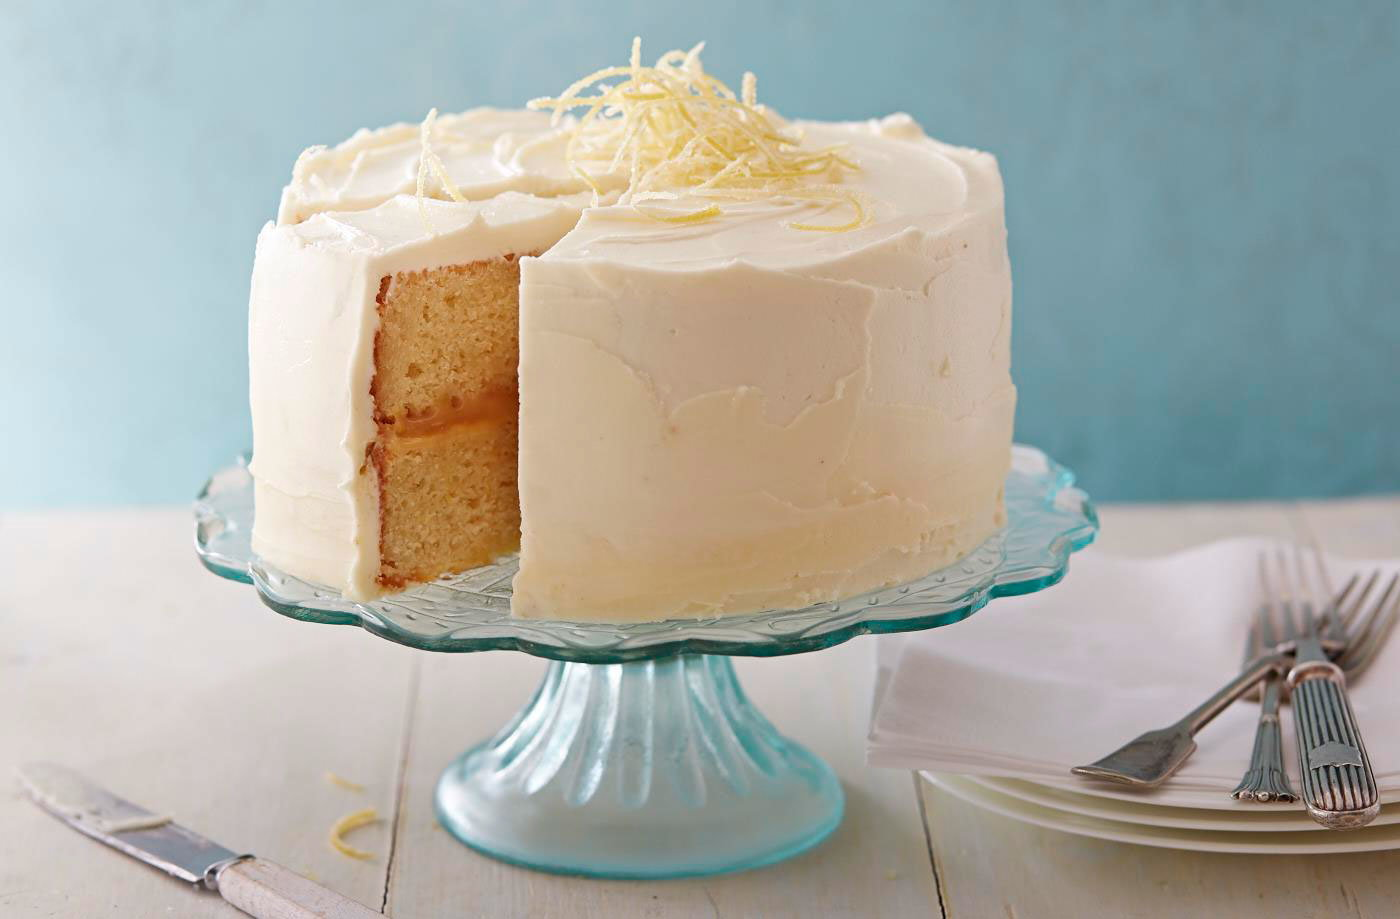 Lemon Celebration Cake Recipe